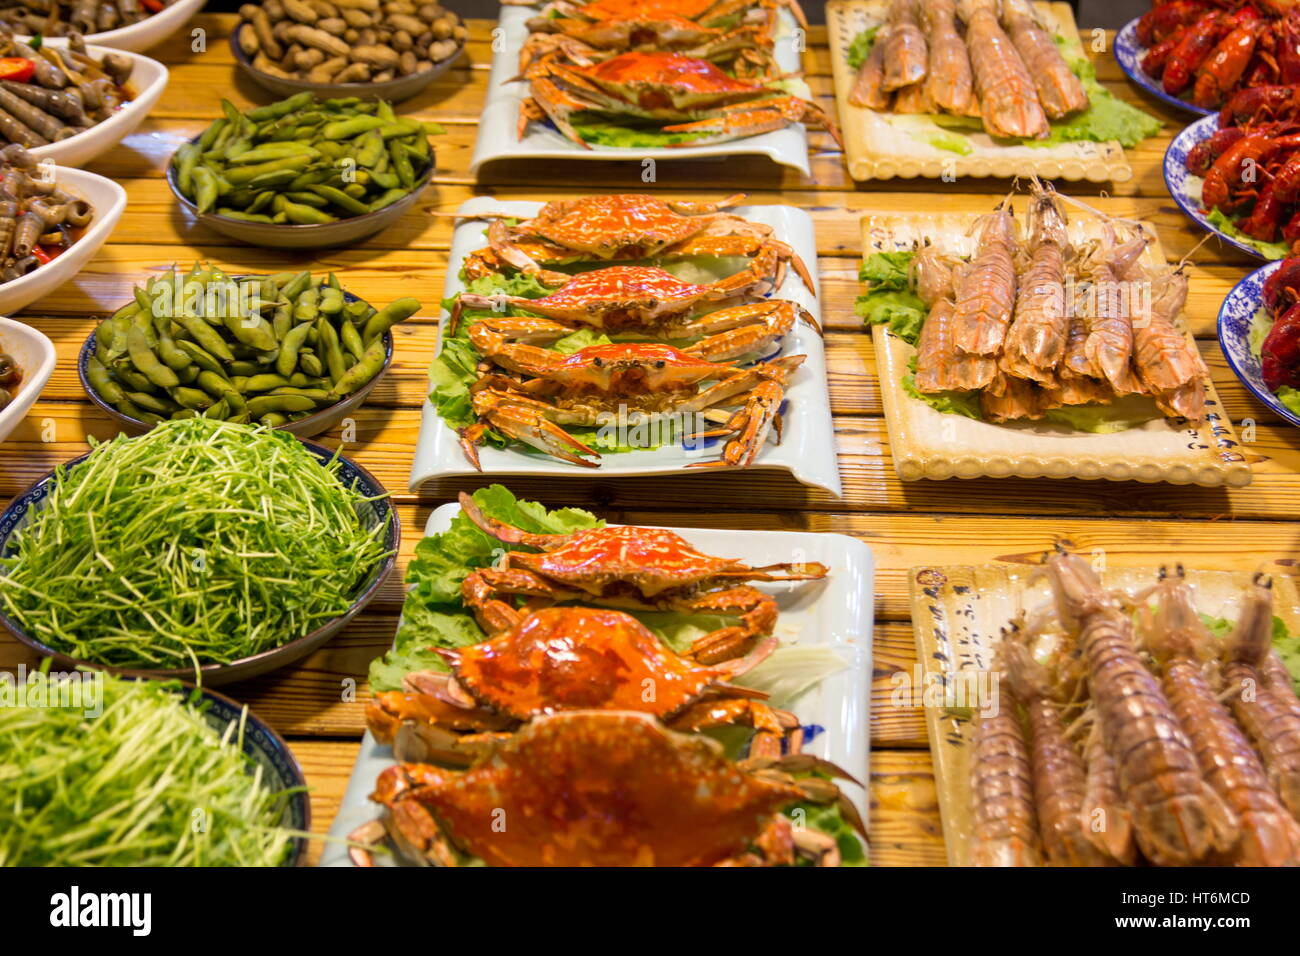 Crabs and various kinds of seafood offered in night food market - Stock Image